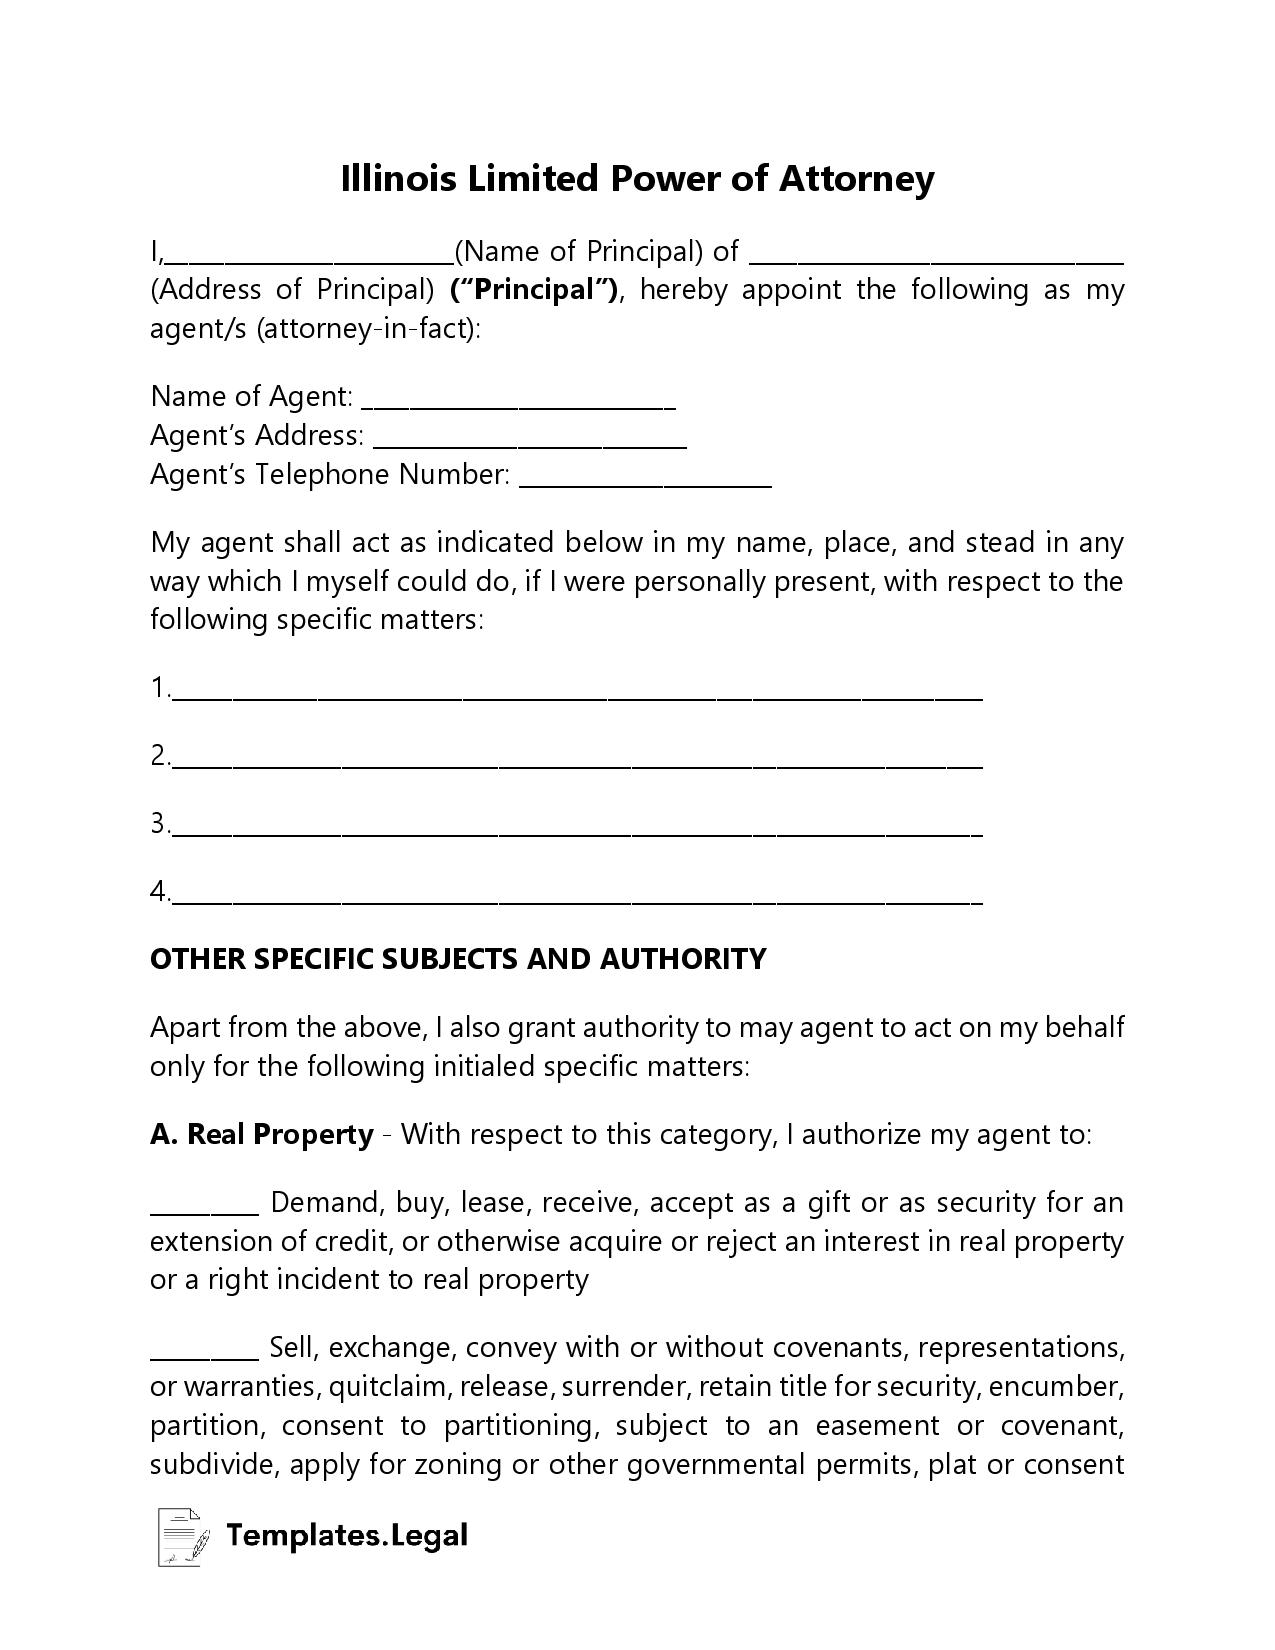 Illinois Limited Power of Attorney - Templates.Legal